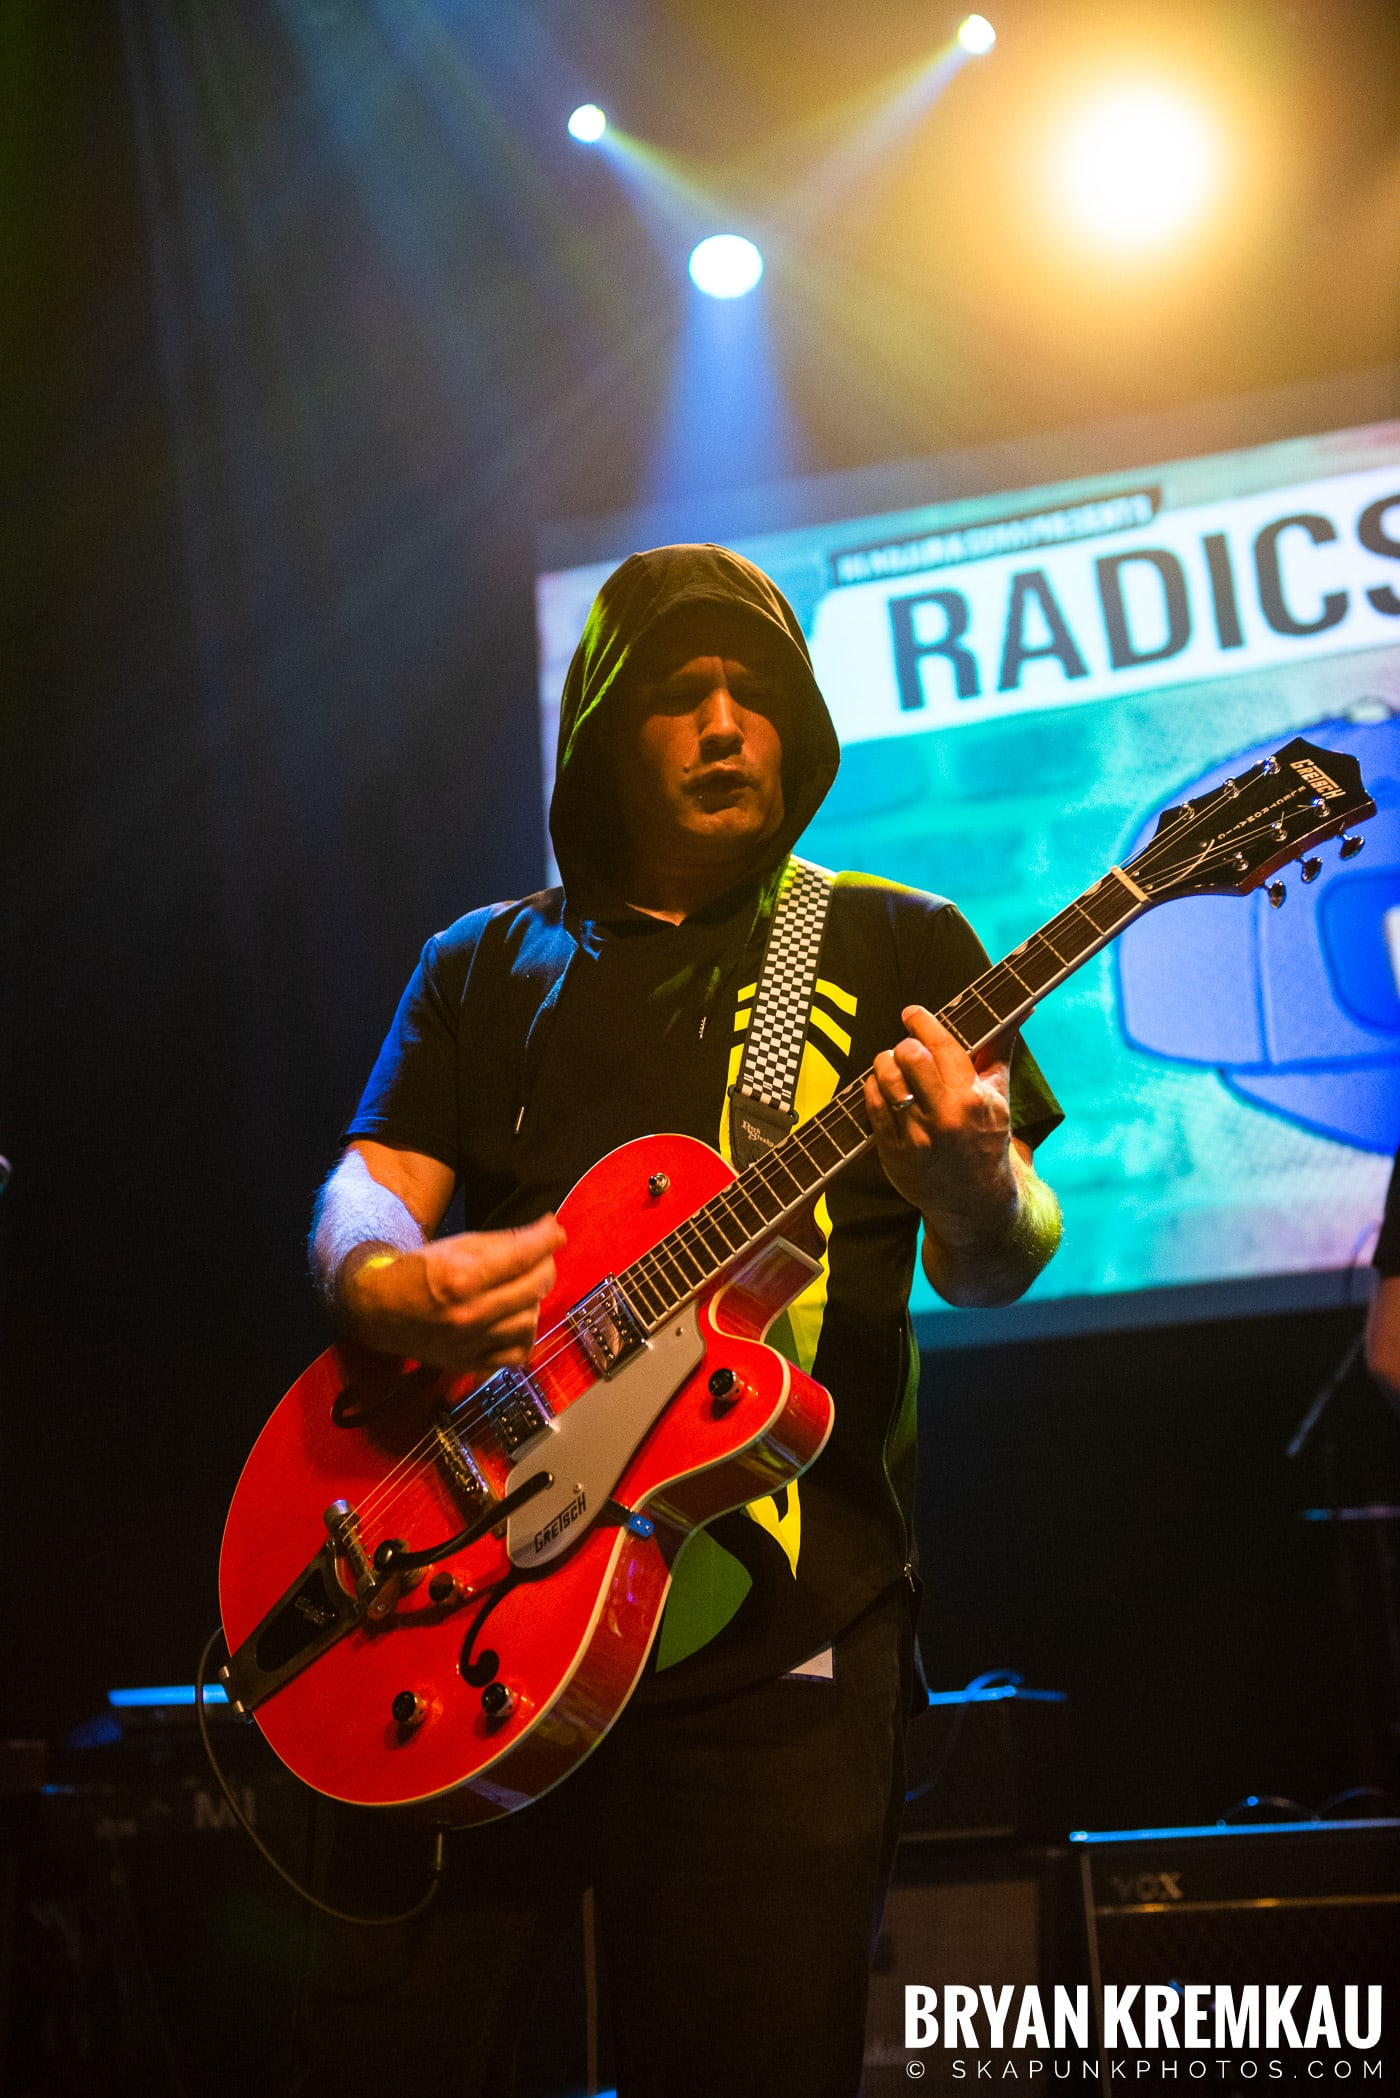 Sgt. Scagnetti @ Radicsfest, Gramercy Theatre, NYC - 7.19.19 (42)